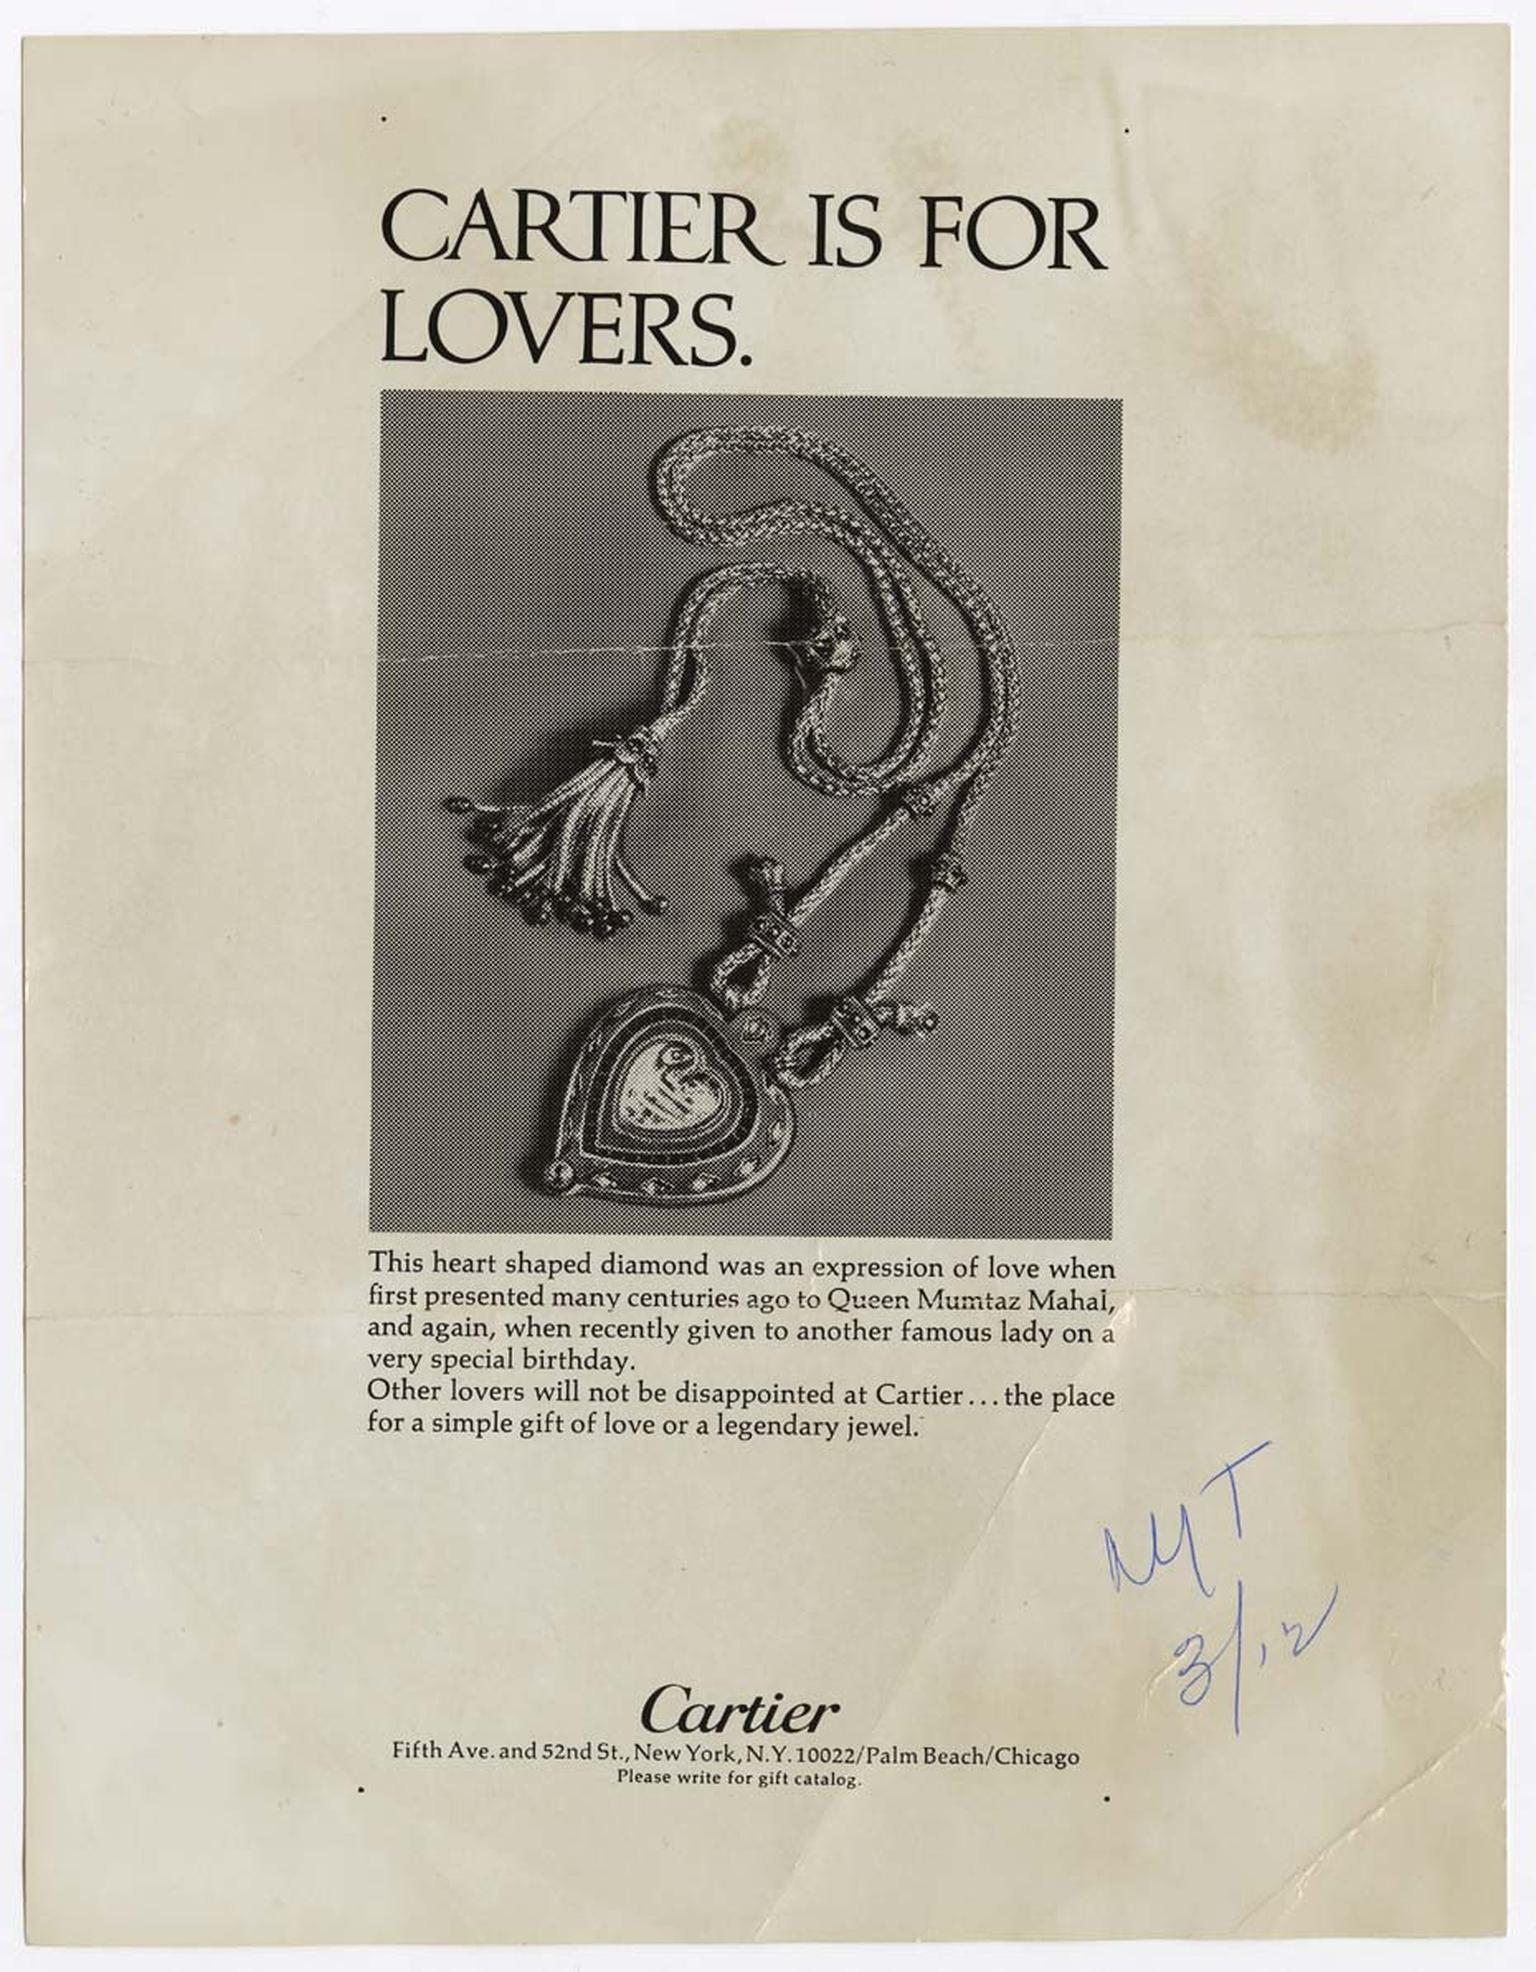 Cartier Took Out An Ad In The New York Times Featuring A Picture Of Taj